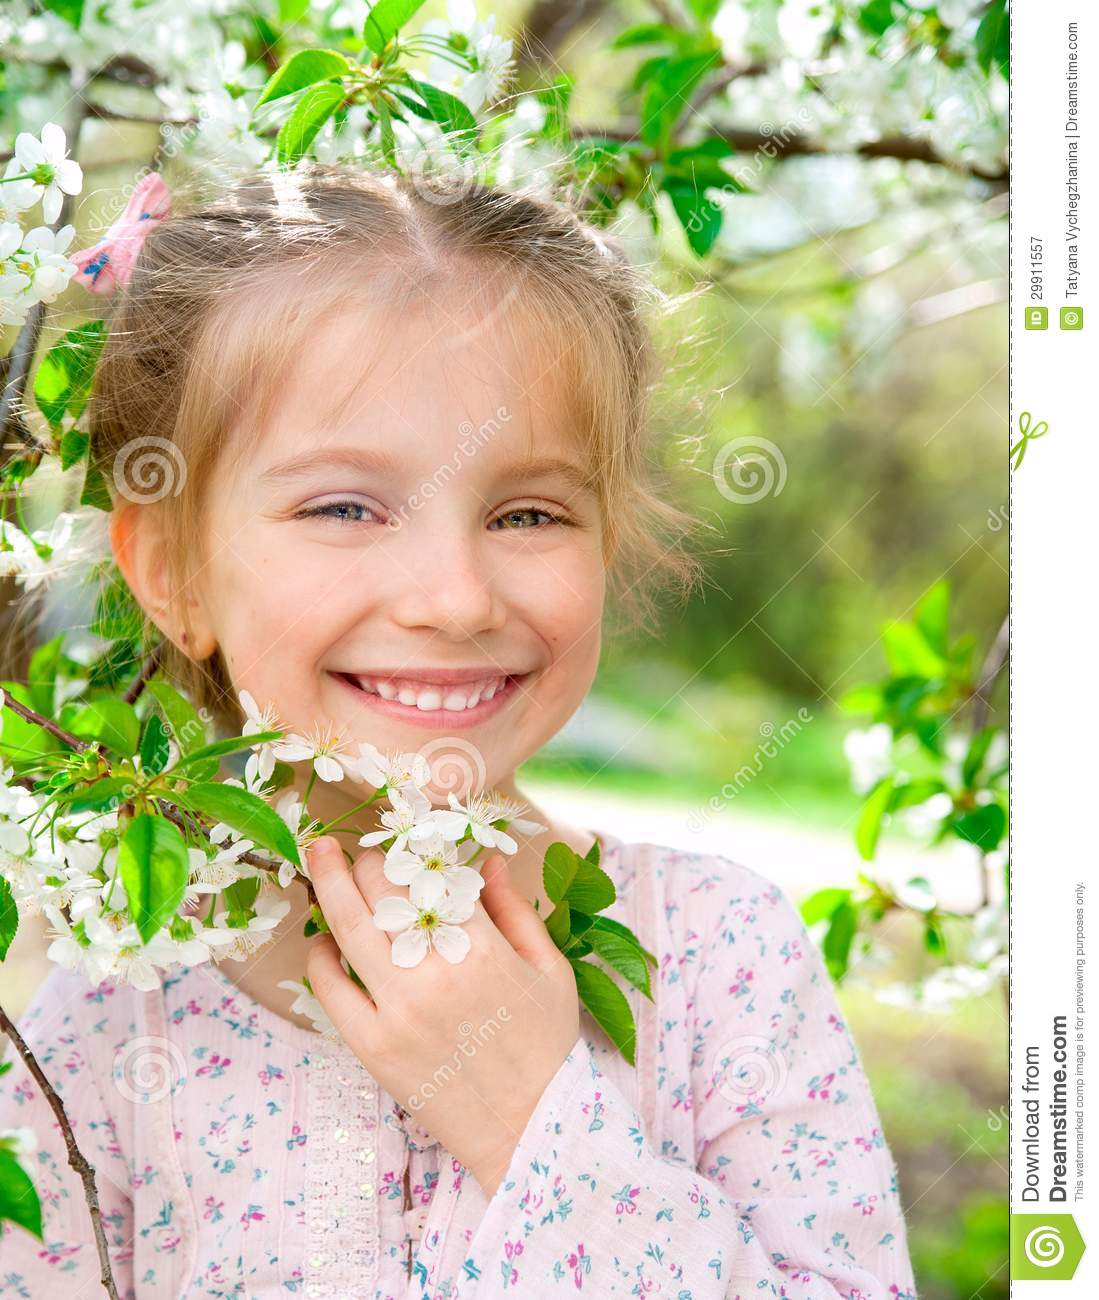 Little Girl With Bush Blossoming Tree Royalty Free Stock